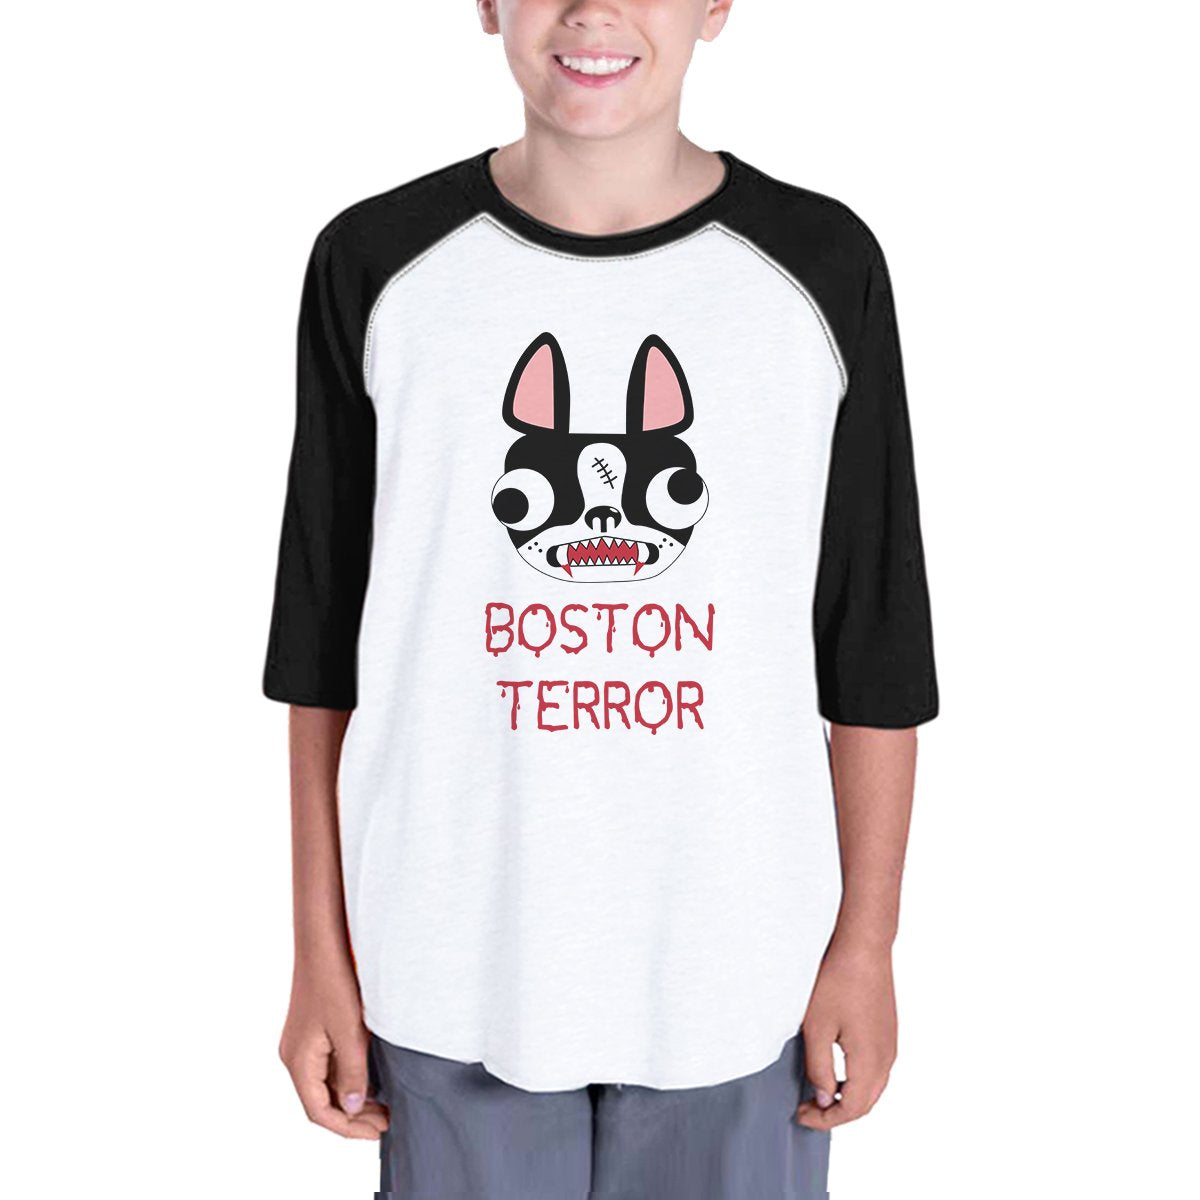 Boston Terror Terrier Kids Black And White BaseBall Shirt